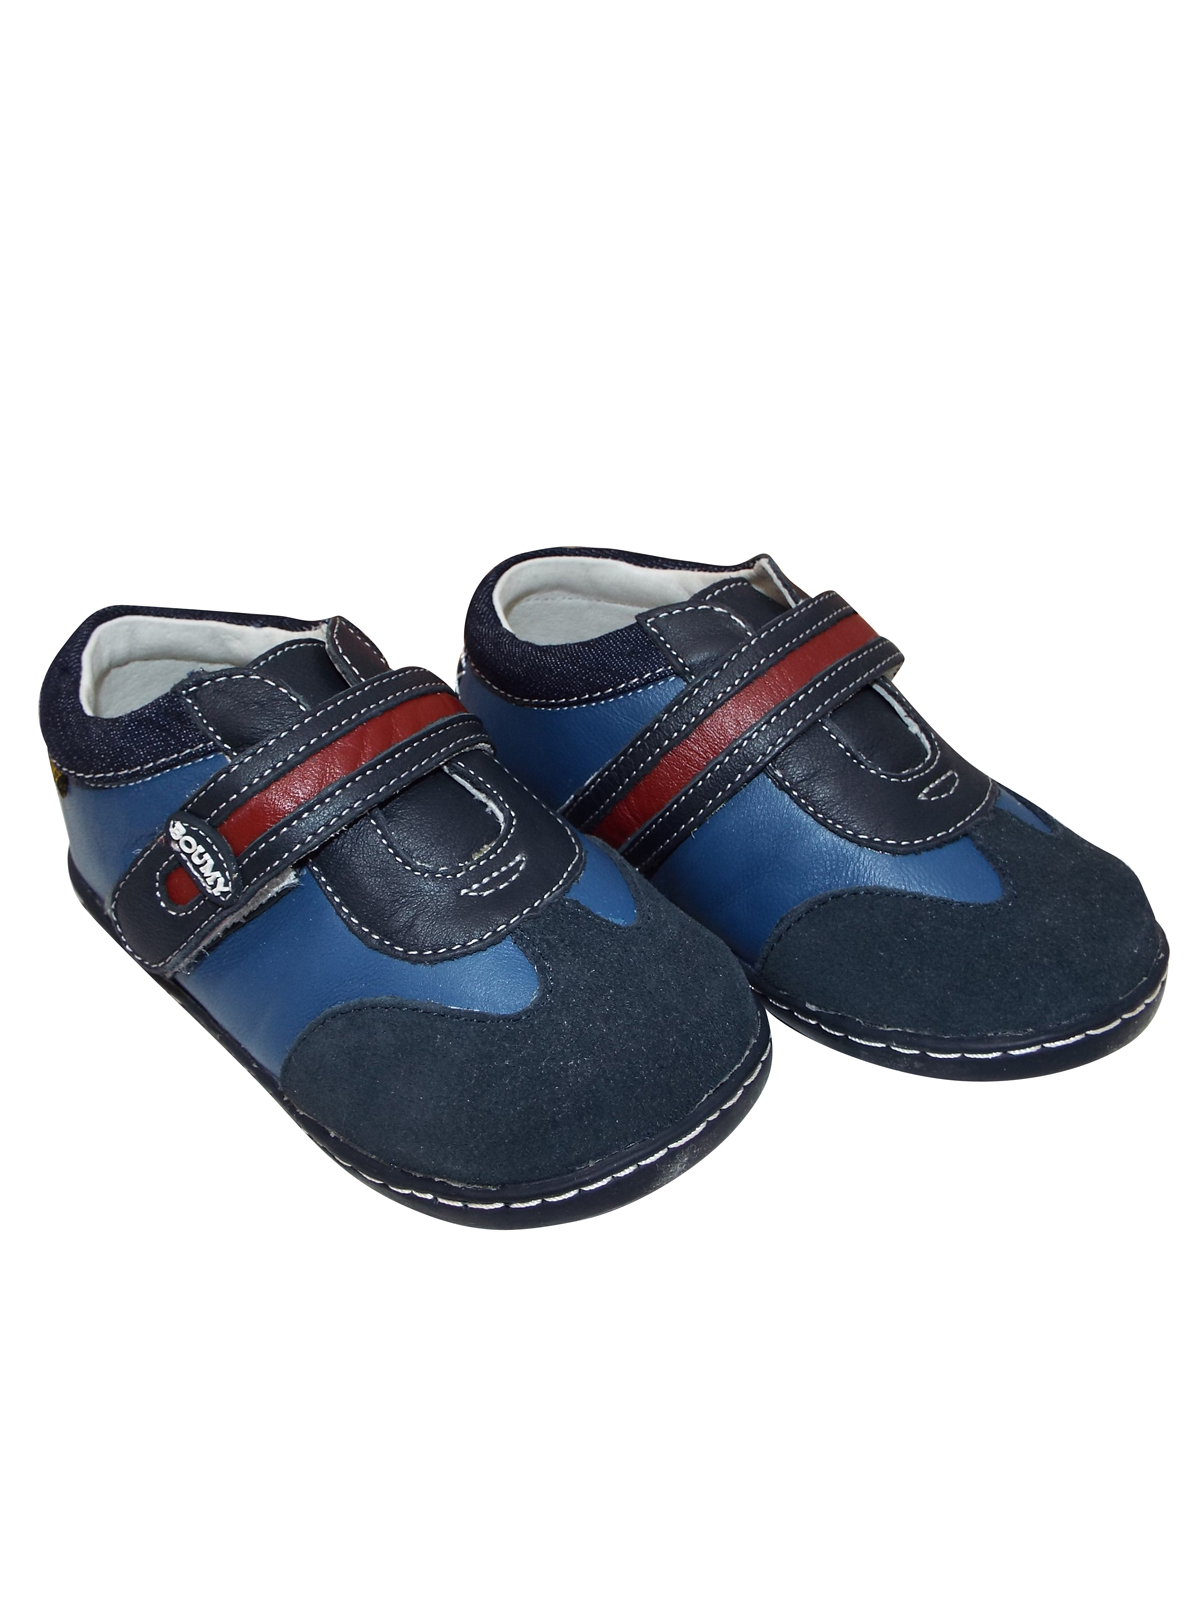 Boumy Boumy Boys COBALT Genuine Leather Outdoor Shoes Shoe